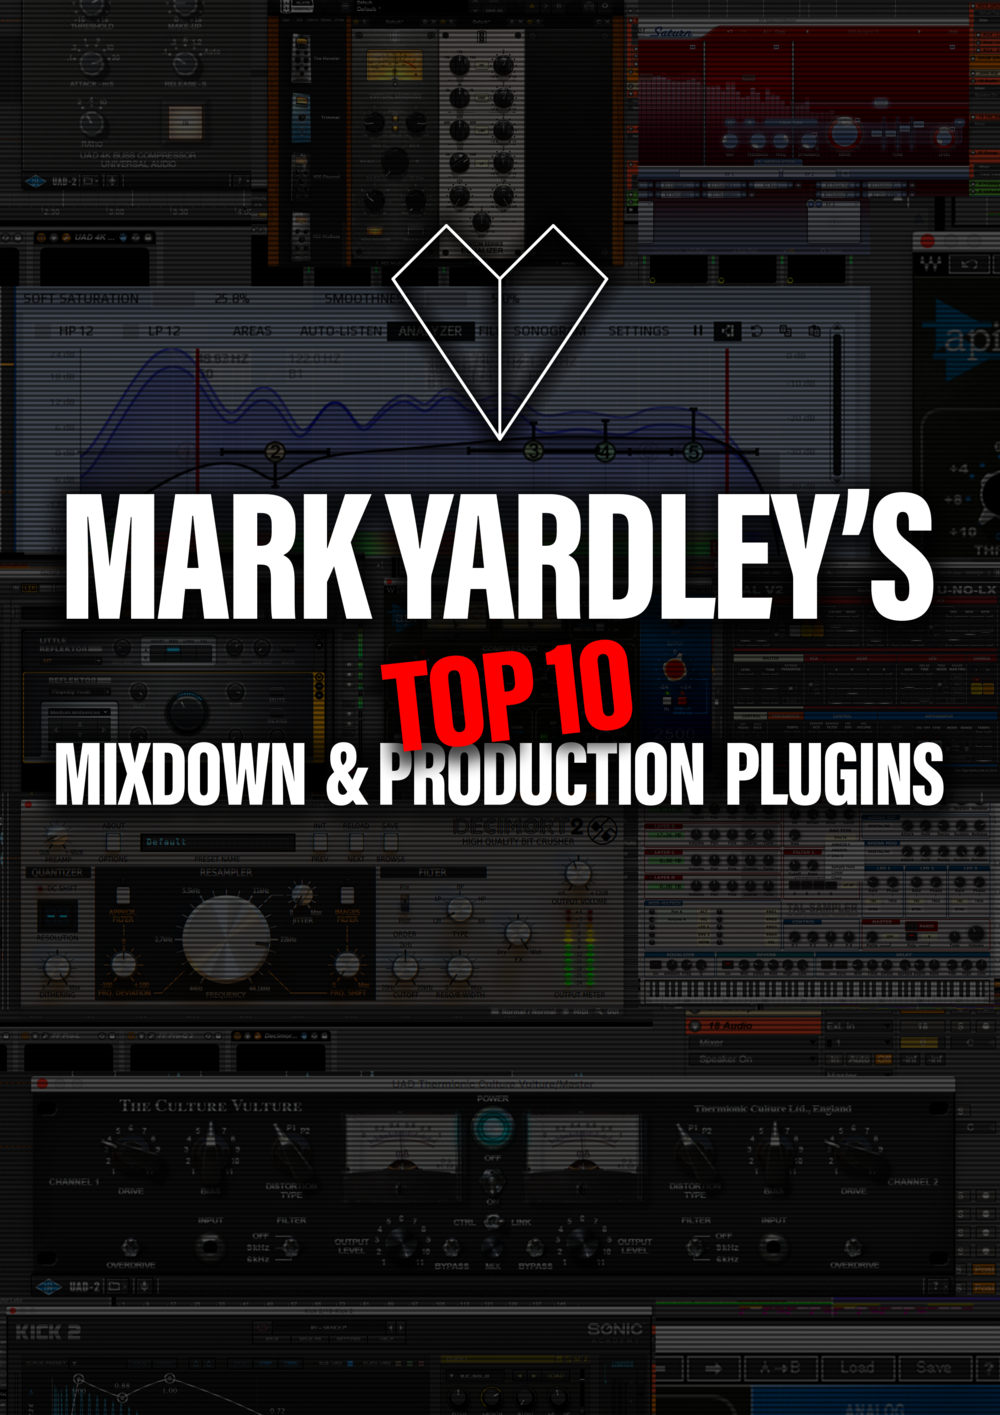 Mark Yardley's Top Mixdown Cover 3.png